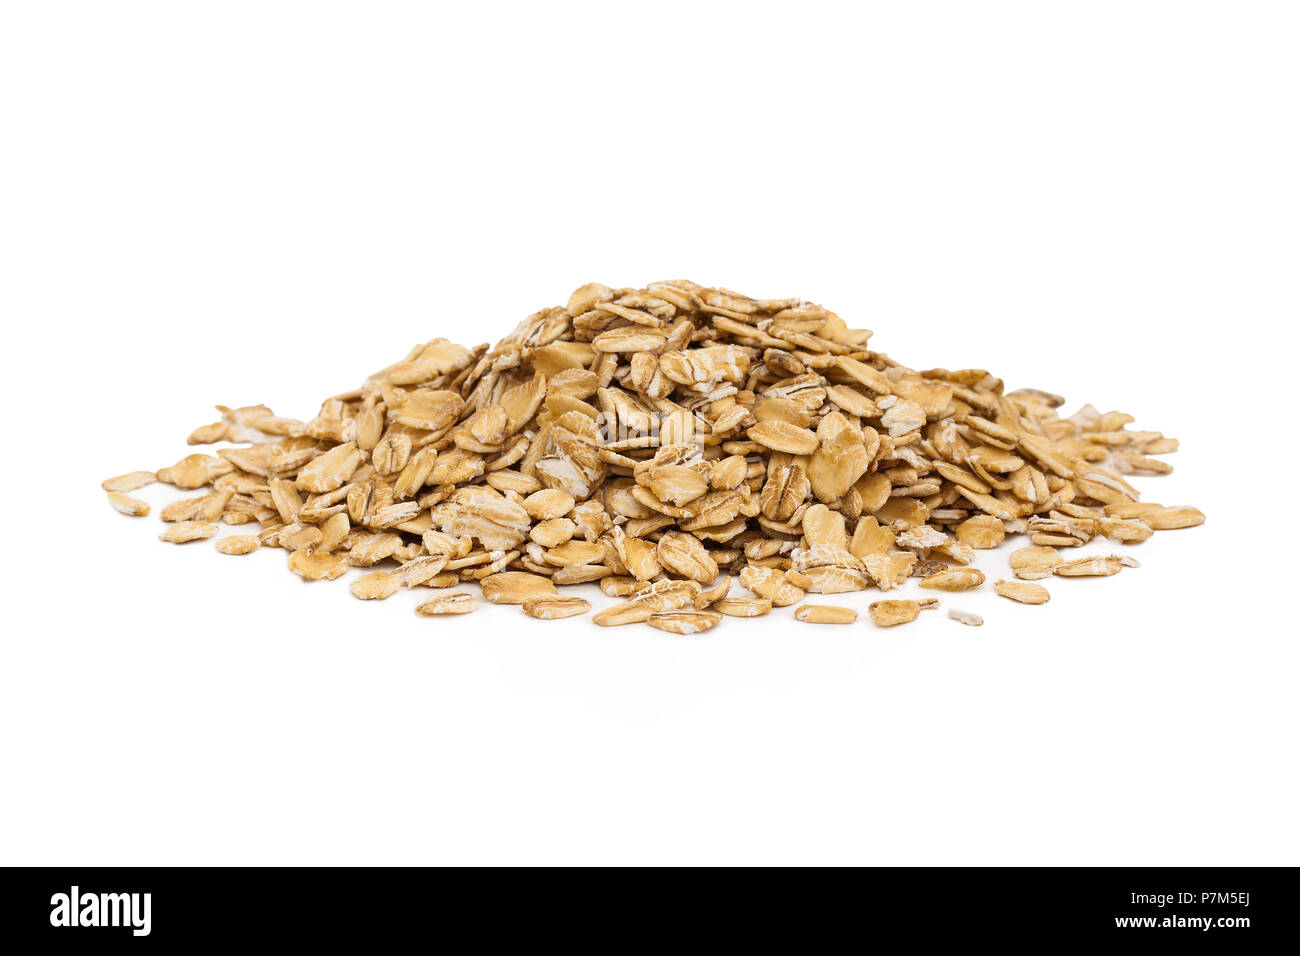 Isolated uncooked pile of oats isolated on a white background. Stock Photo